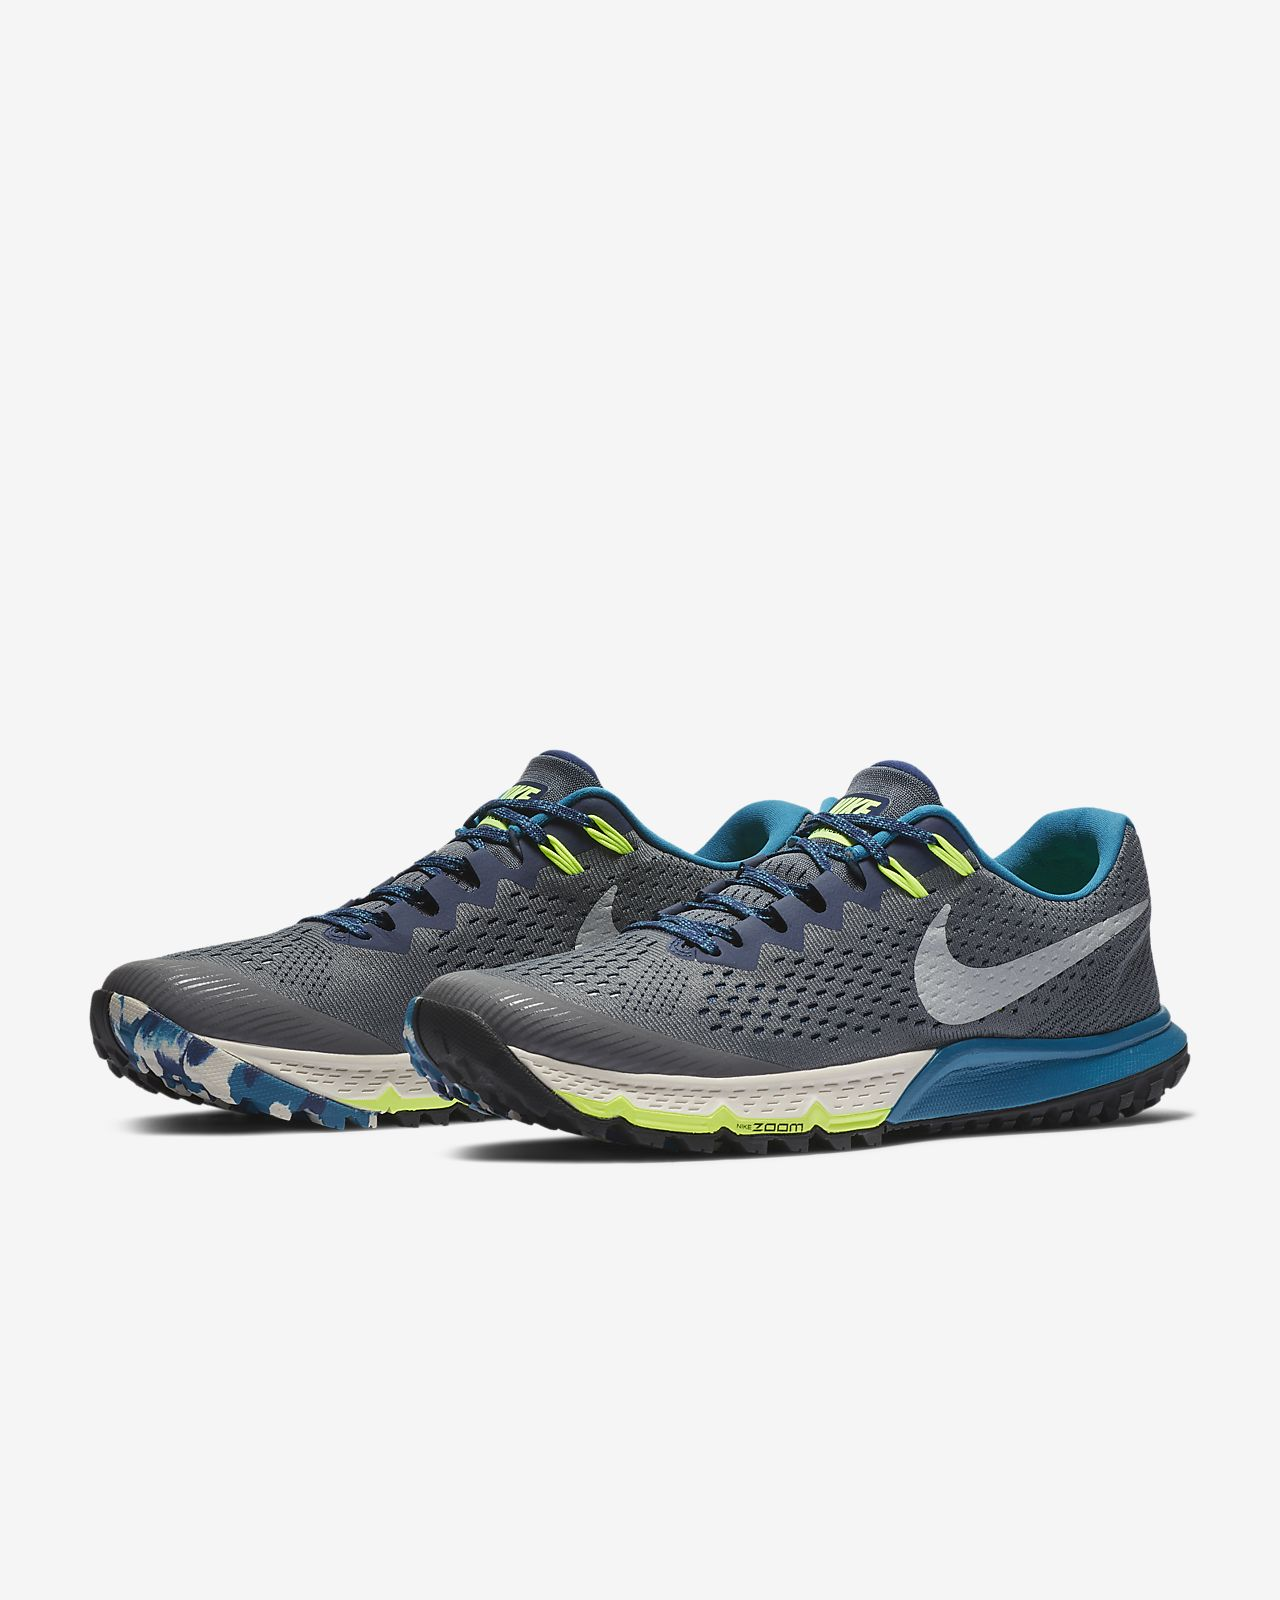 reputable site 59dc9 e6ea9 ... Nike Air Zoom Terra Kiger 4 Men s Running Shoe